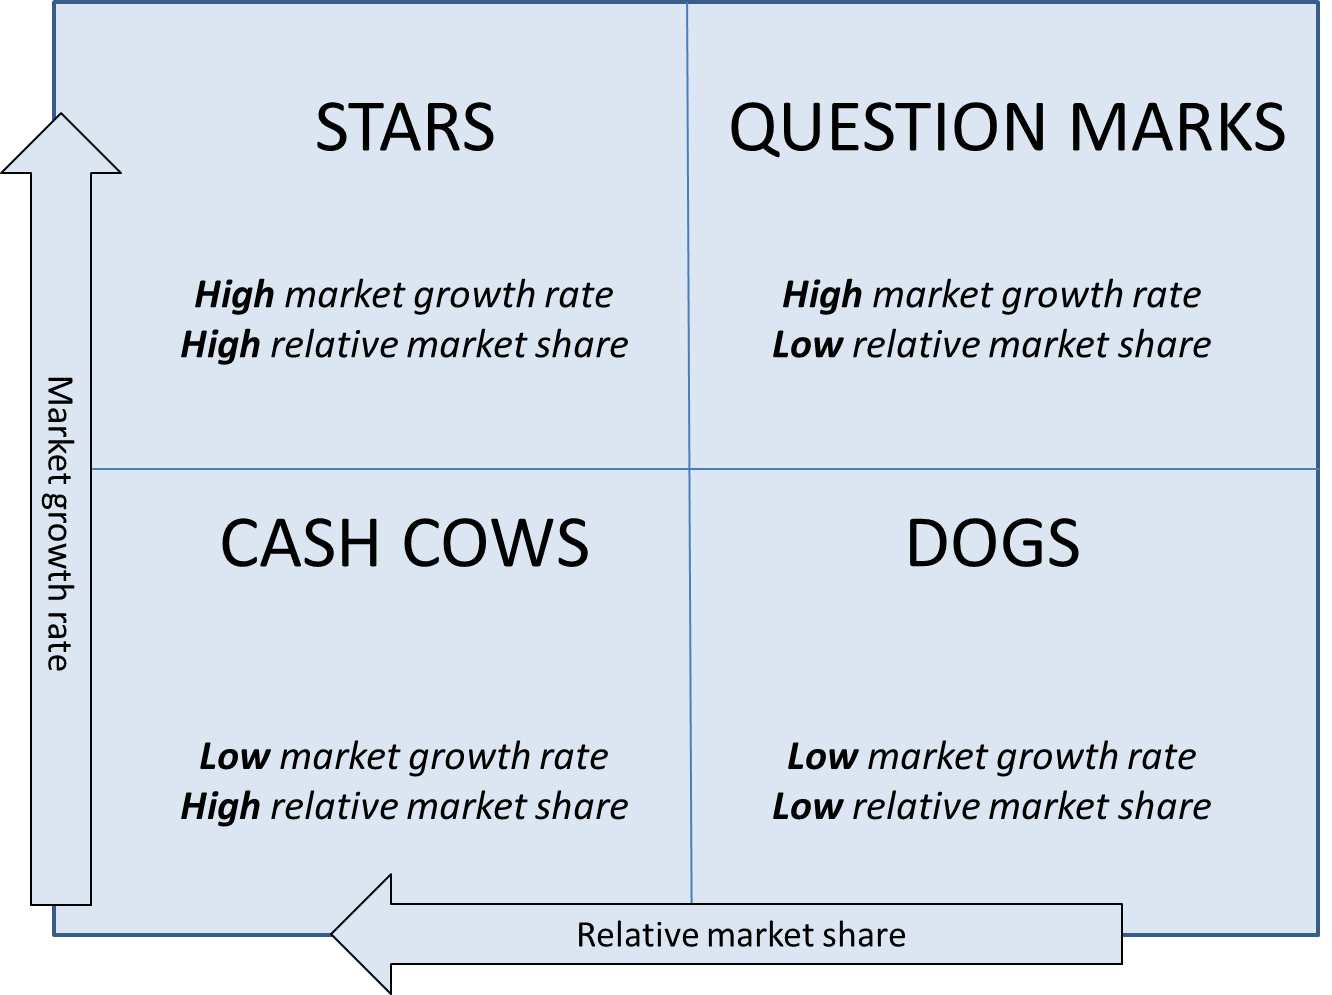 bcg marketing Developed by bruce henderson of boston consulting group in the early 1970s, it is a strategic tool to analyse a business's portfolio on the basis of relative market share and industry growth rate.